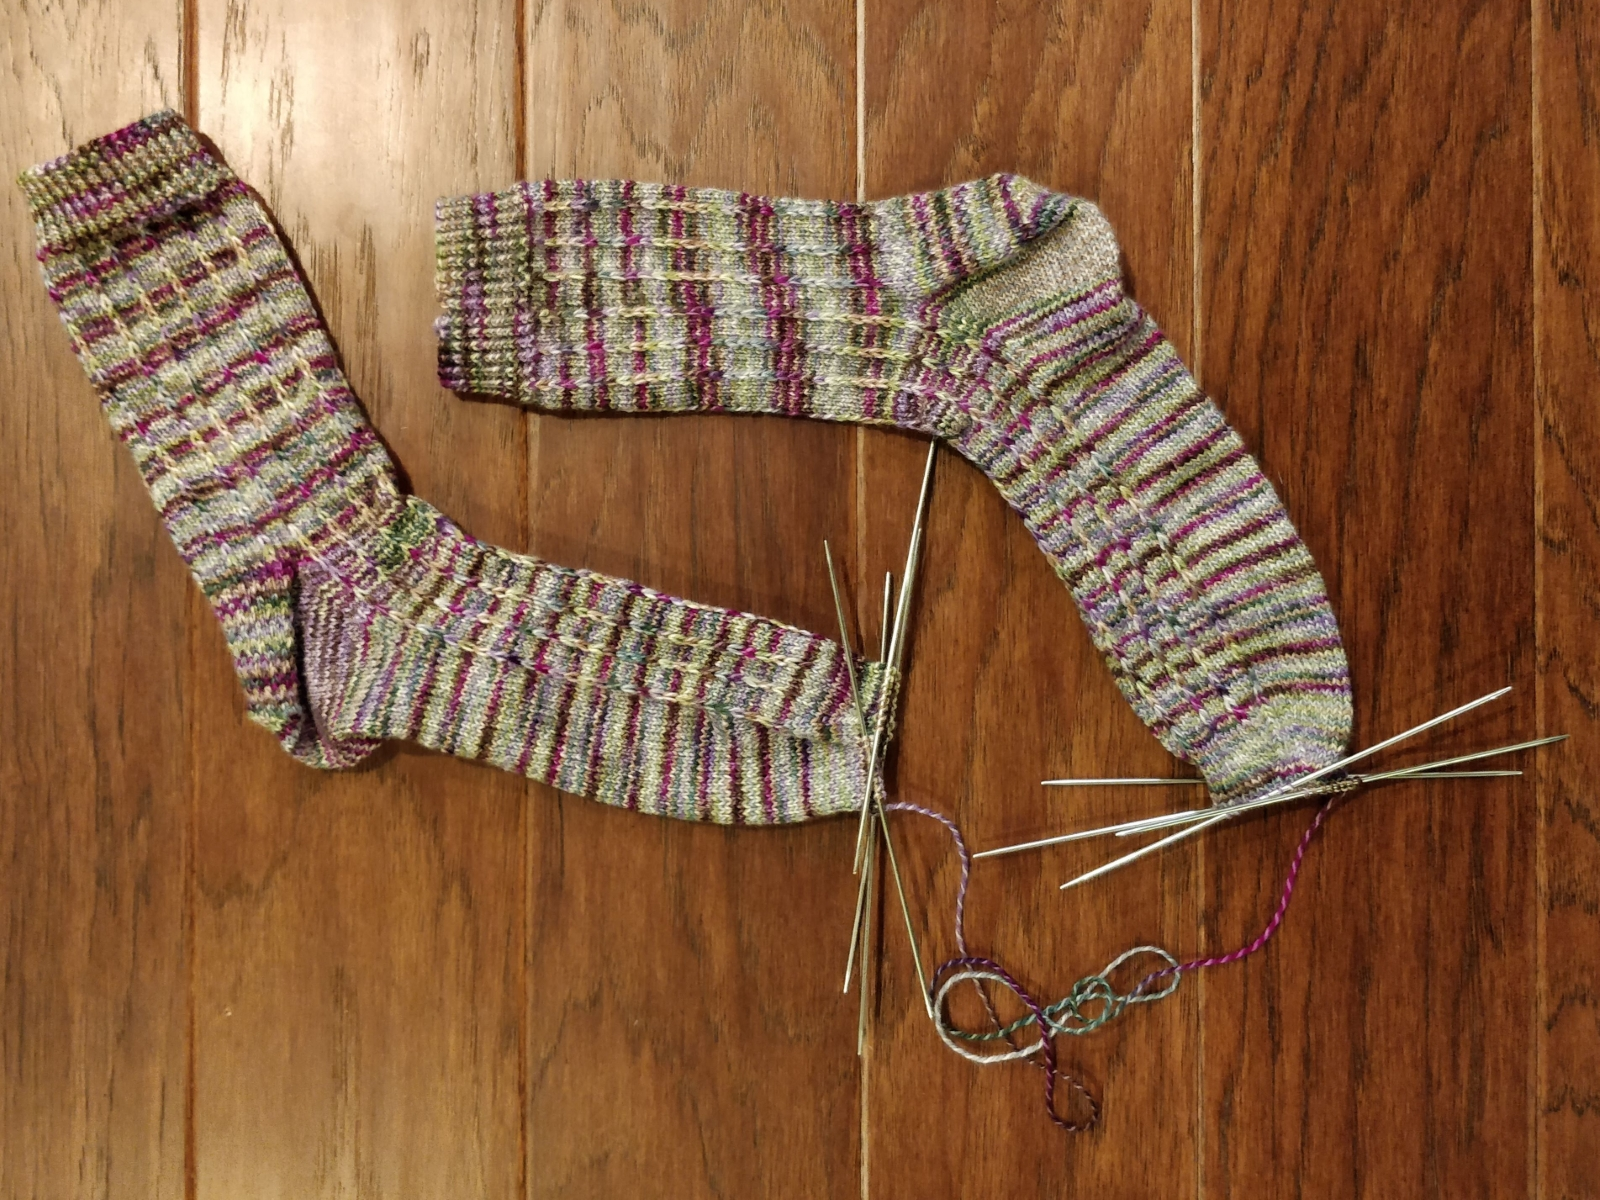 Two almost-finished socks, with about thirty inches of yarn connecting both of them.